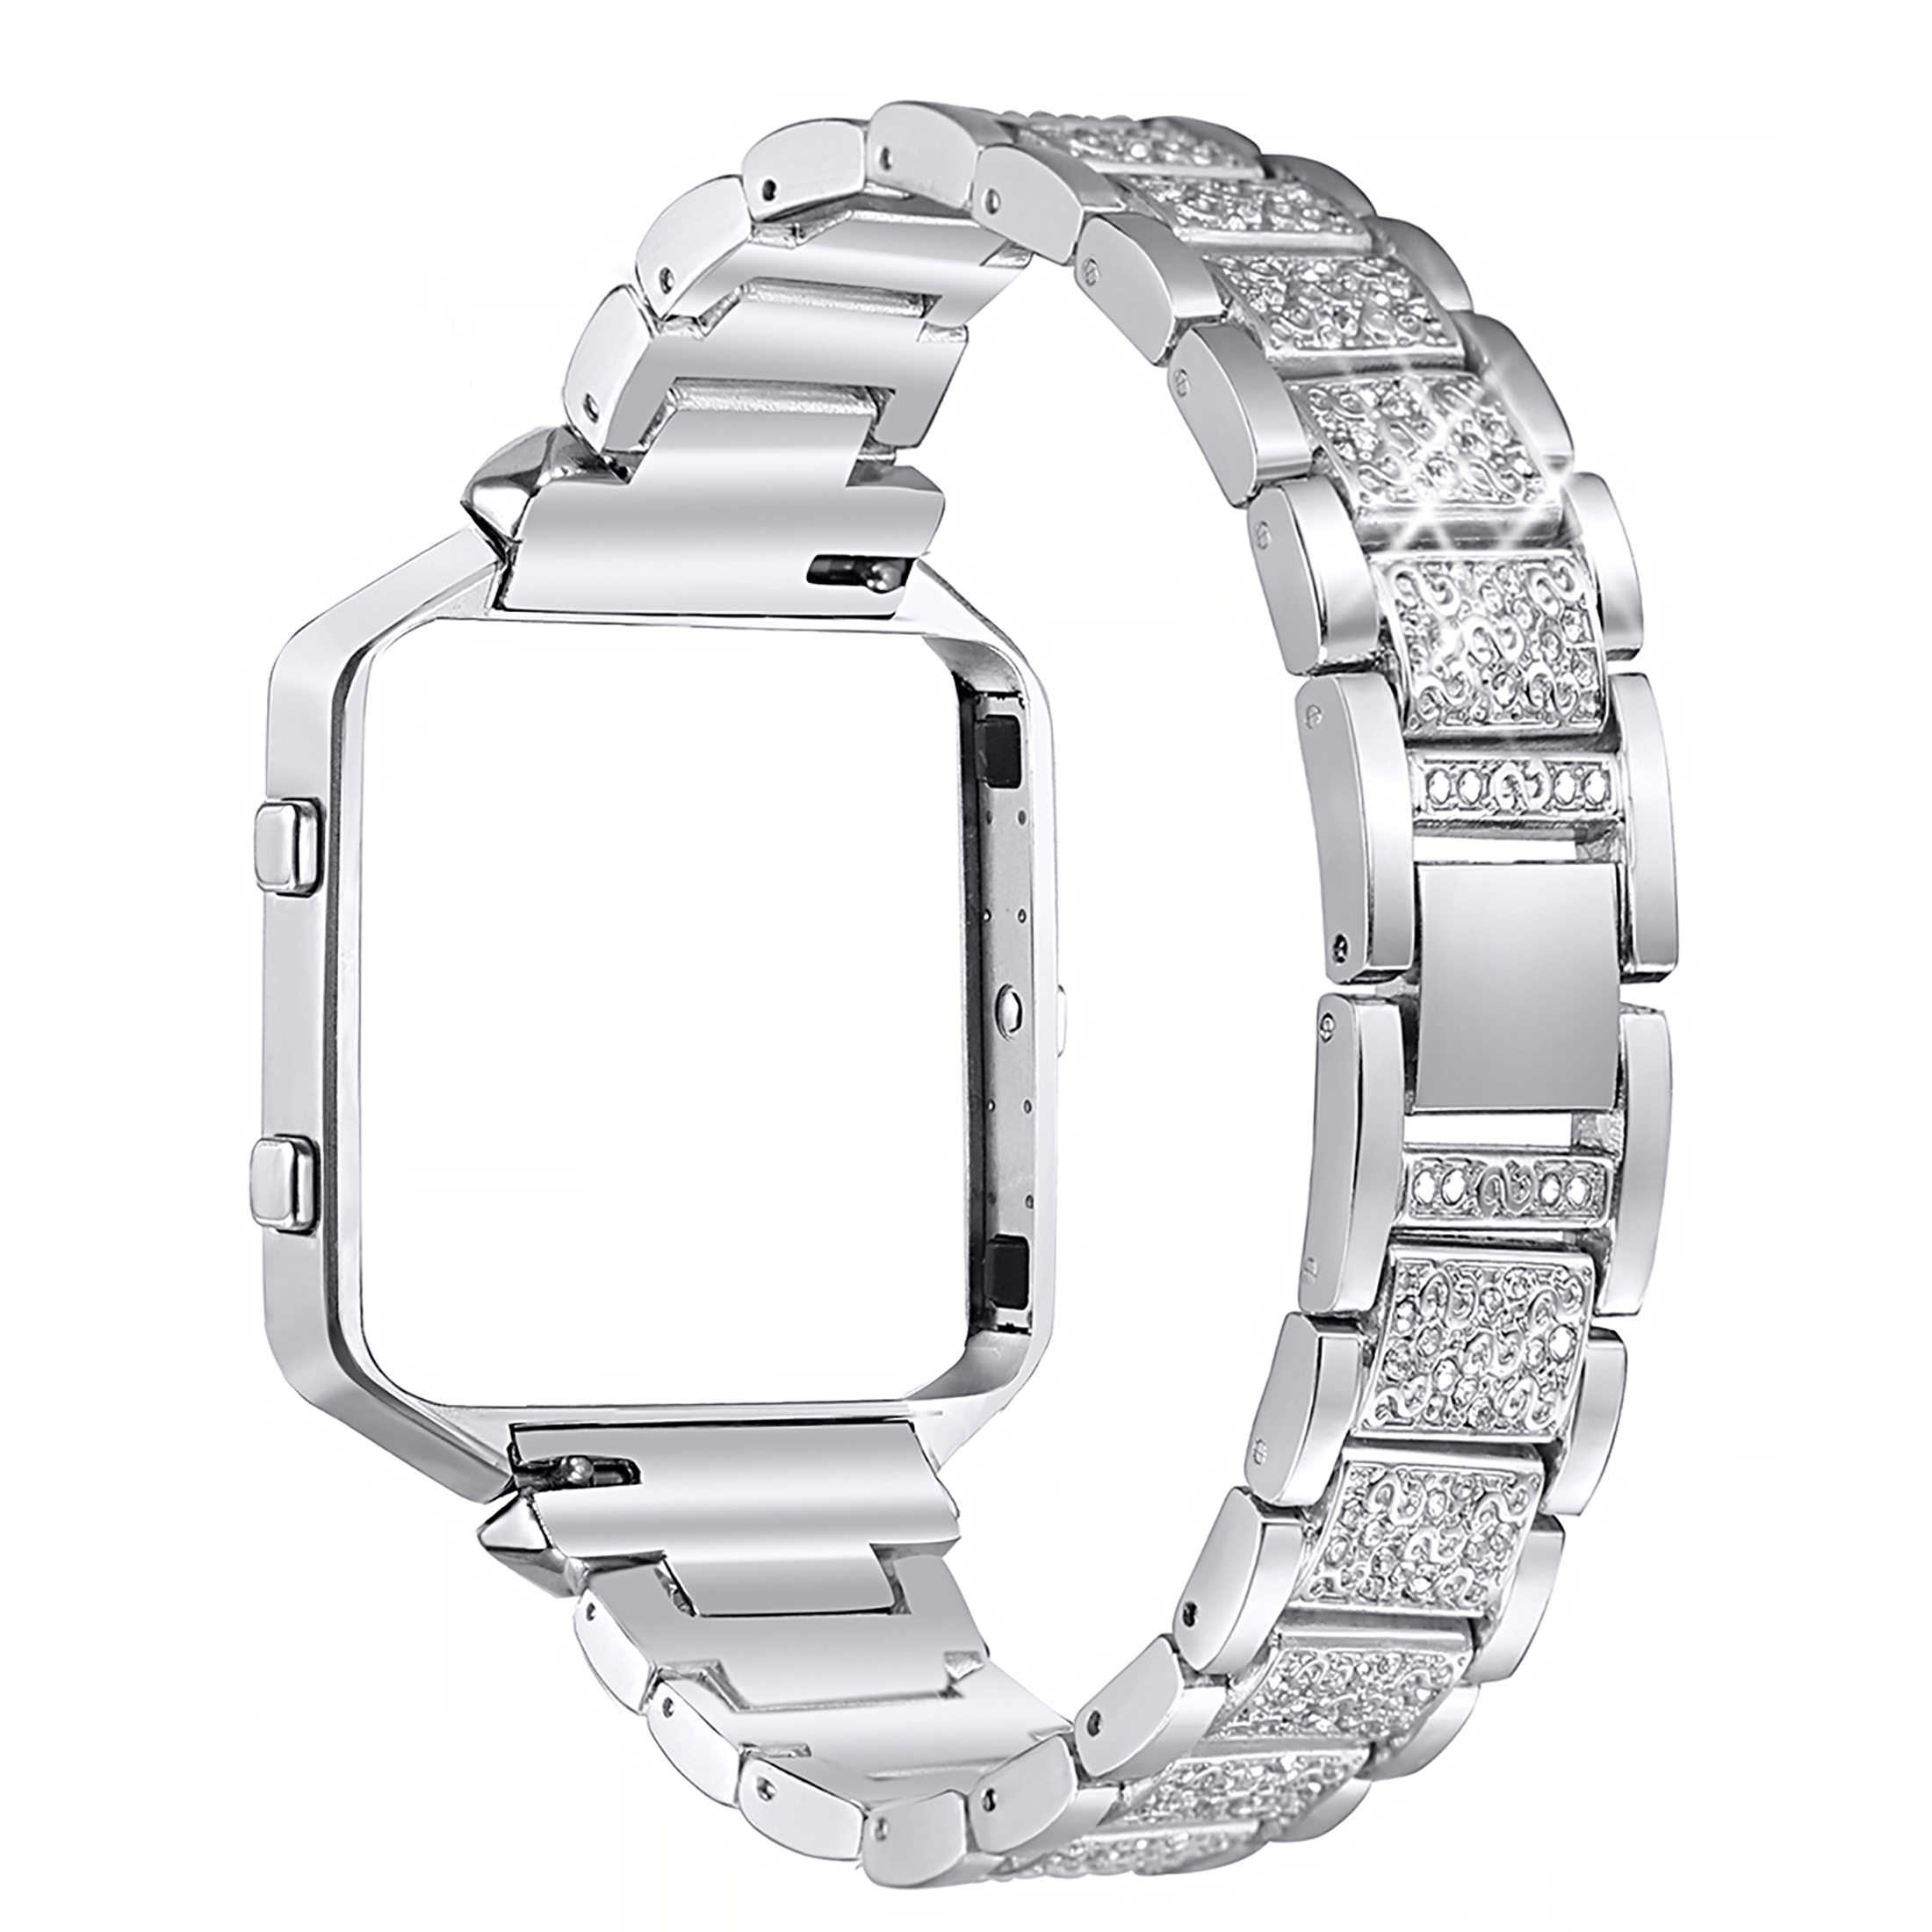 For Fitbit Blaze Bands, bayite Metal Watch Bands Strap with Rhinestone Stainless Steel Frame Replacement Accessory Bracelet Silver